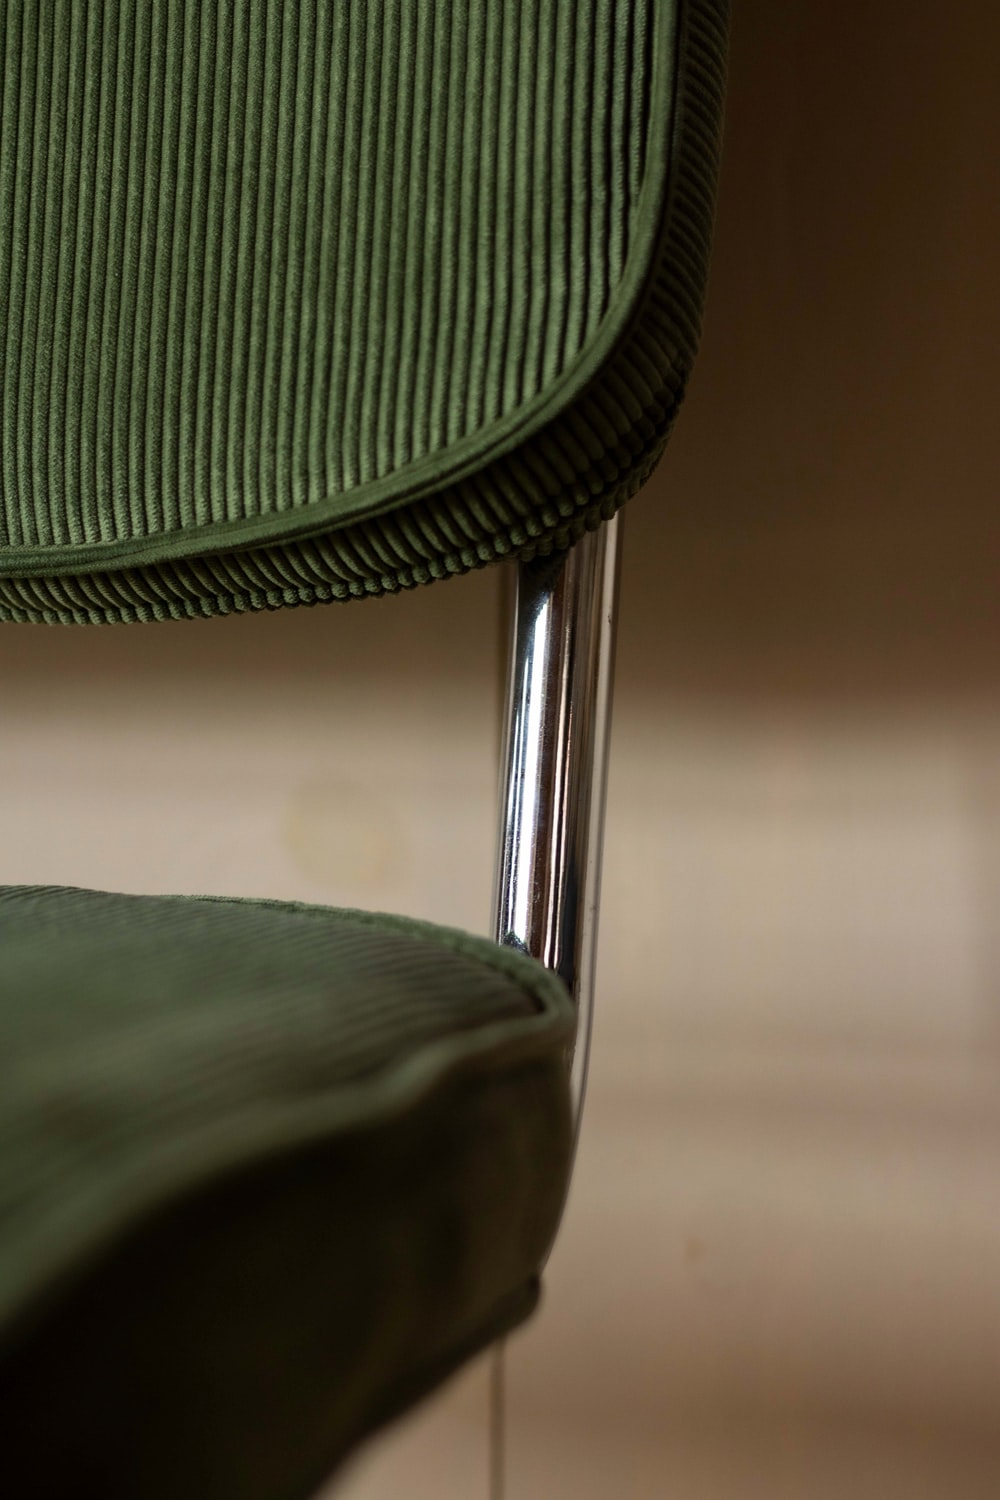 green and black chair on brown floor